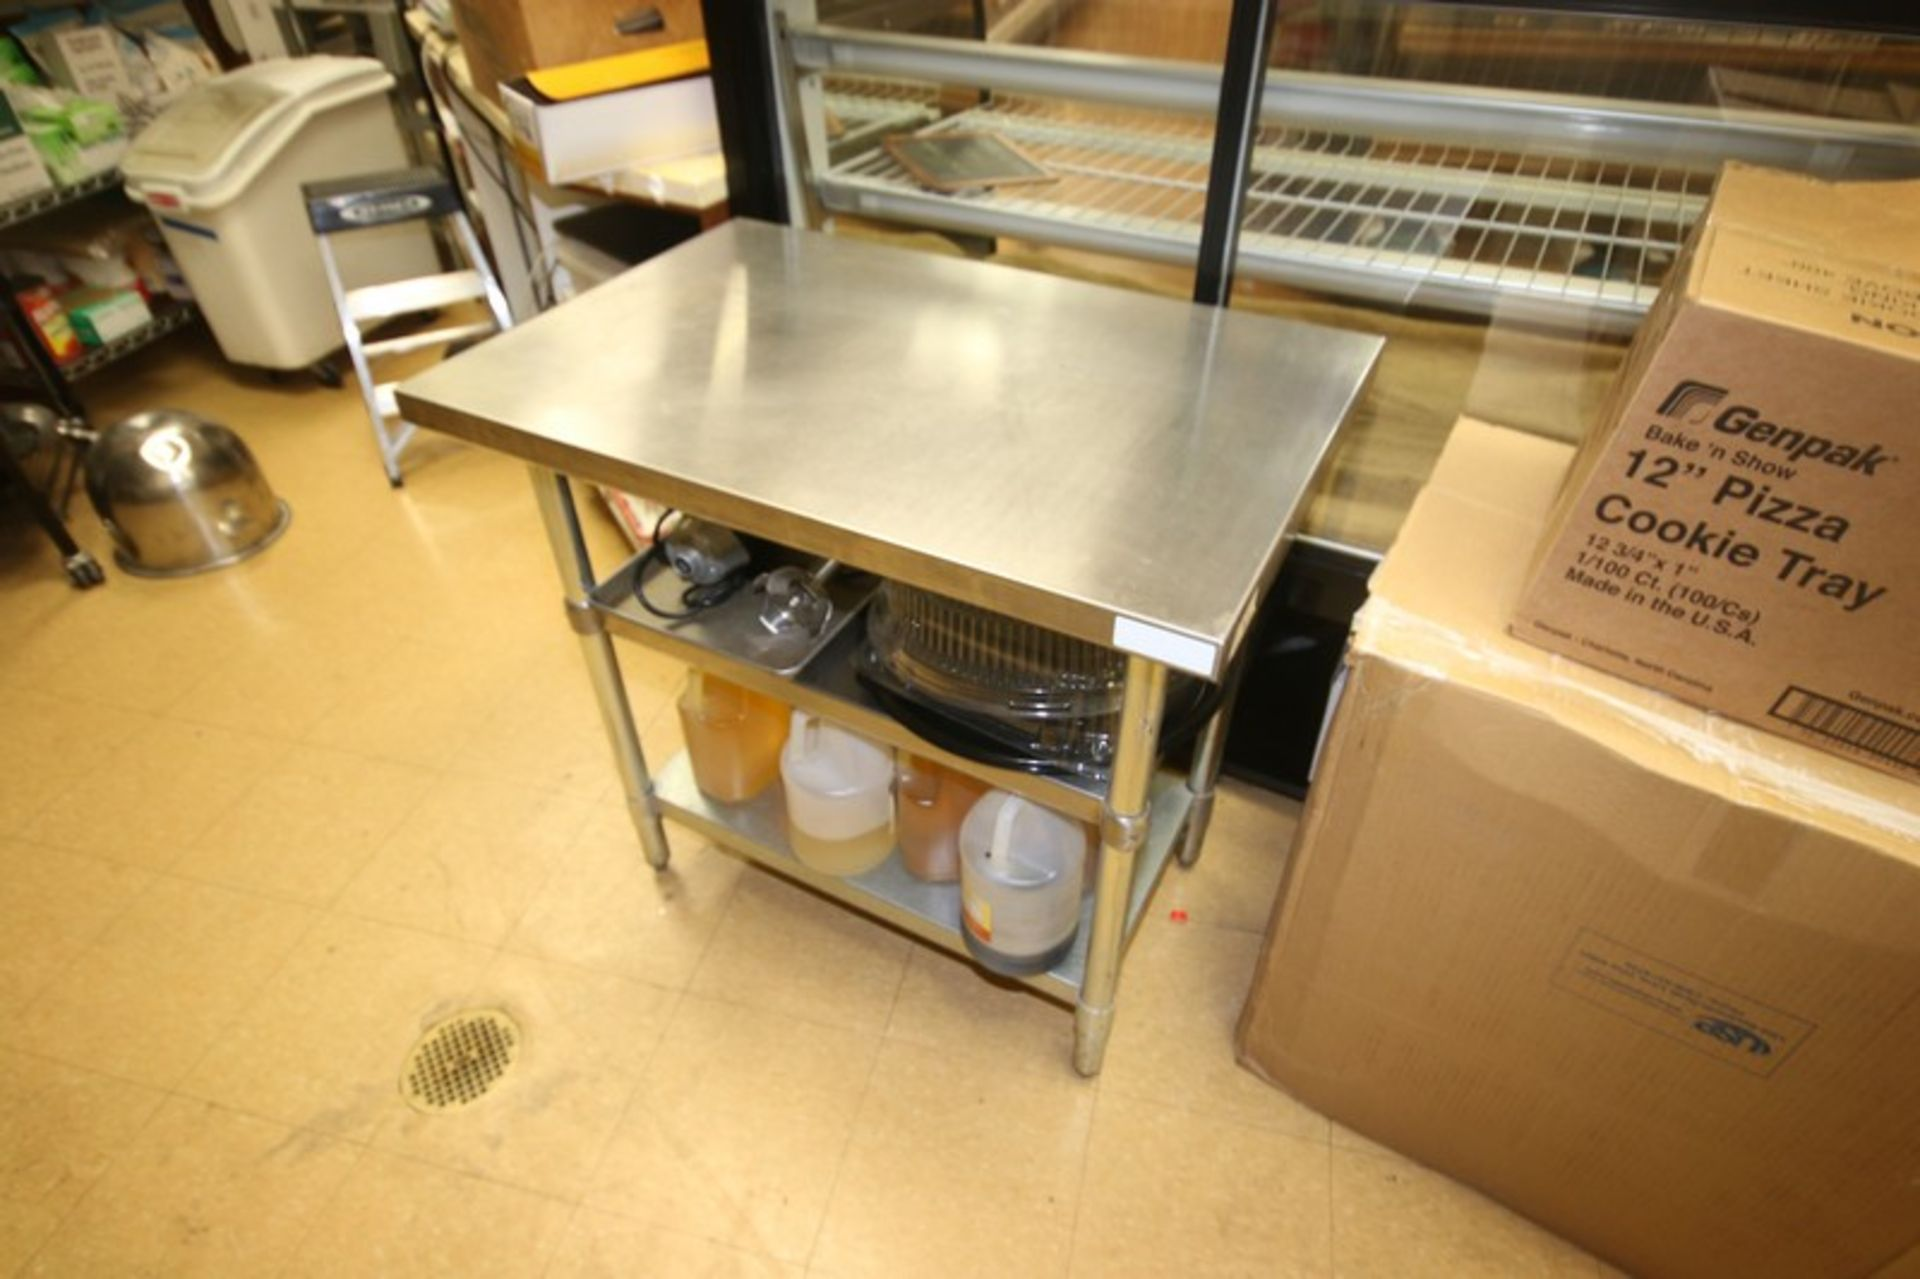 """S/S Table, with (2) S/S Bottom Shelves, Overall Dims.: Aprox. 36"""" L x 24"""" W x 34-1/2"""" H (Locatd in"""